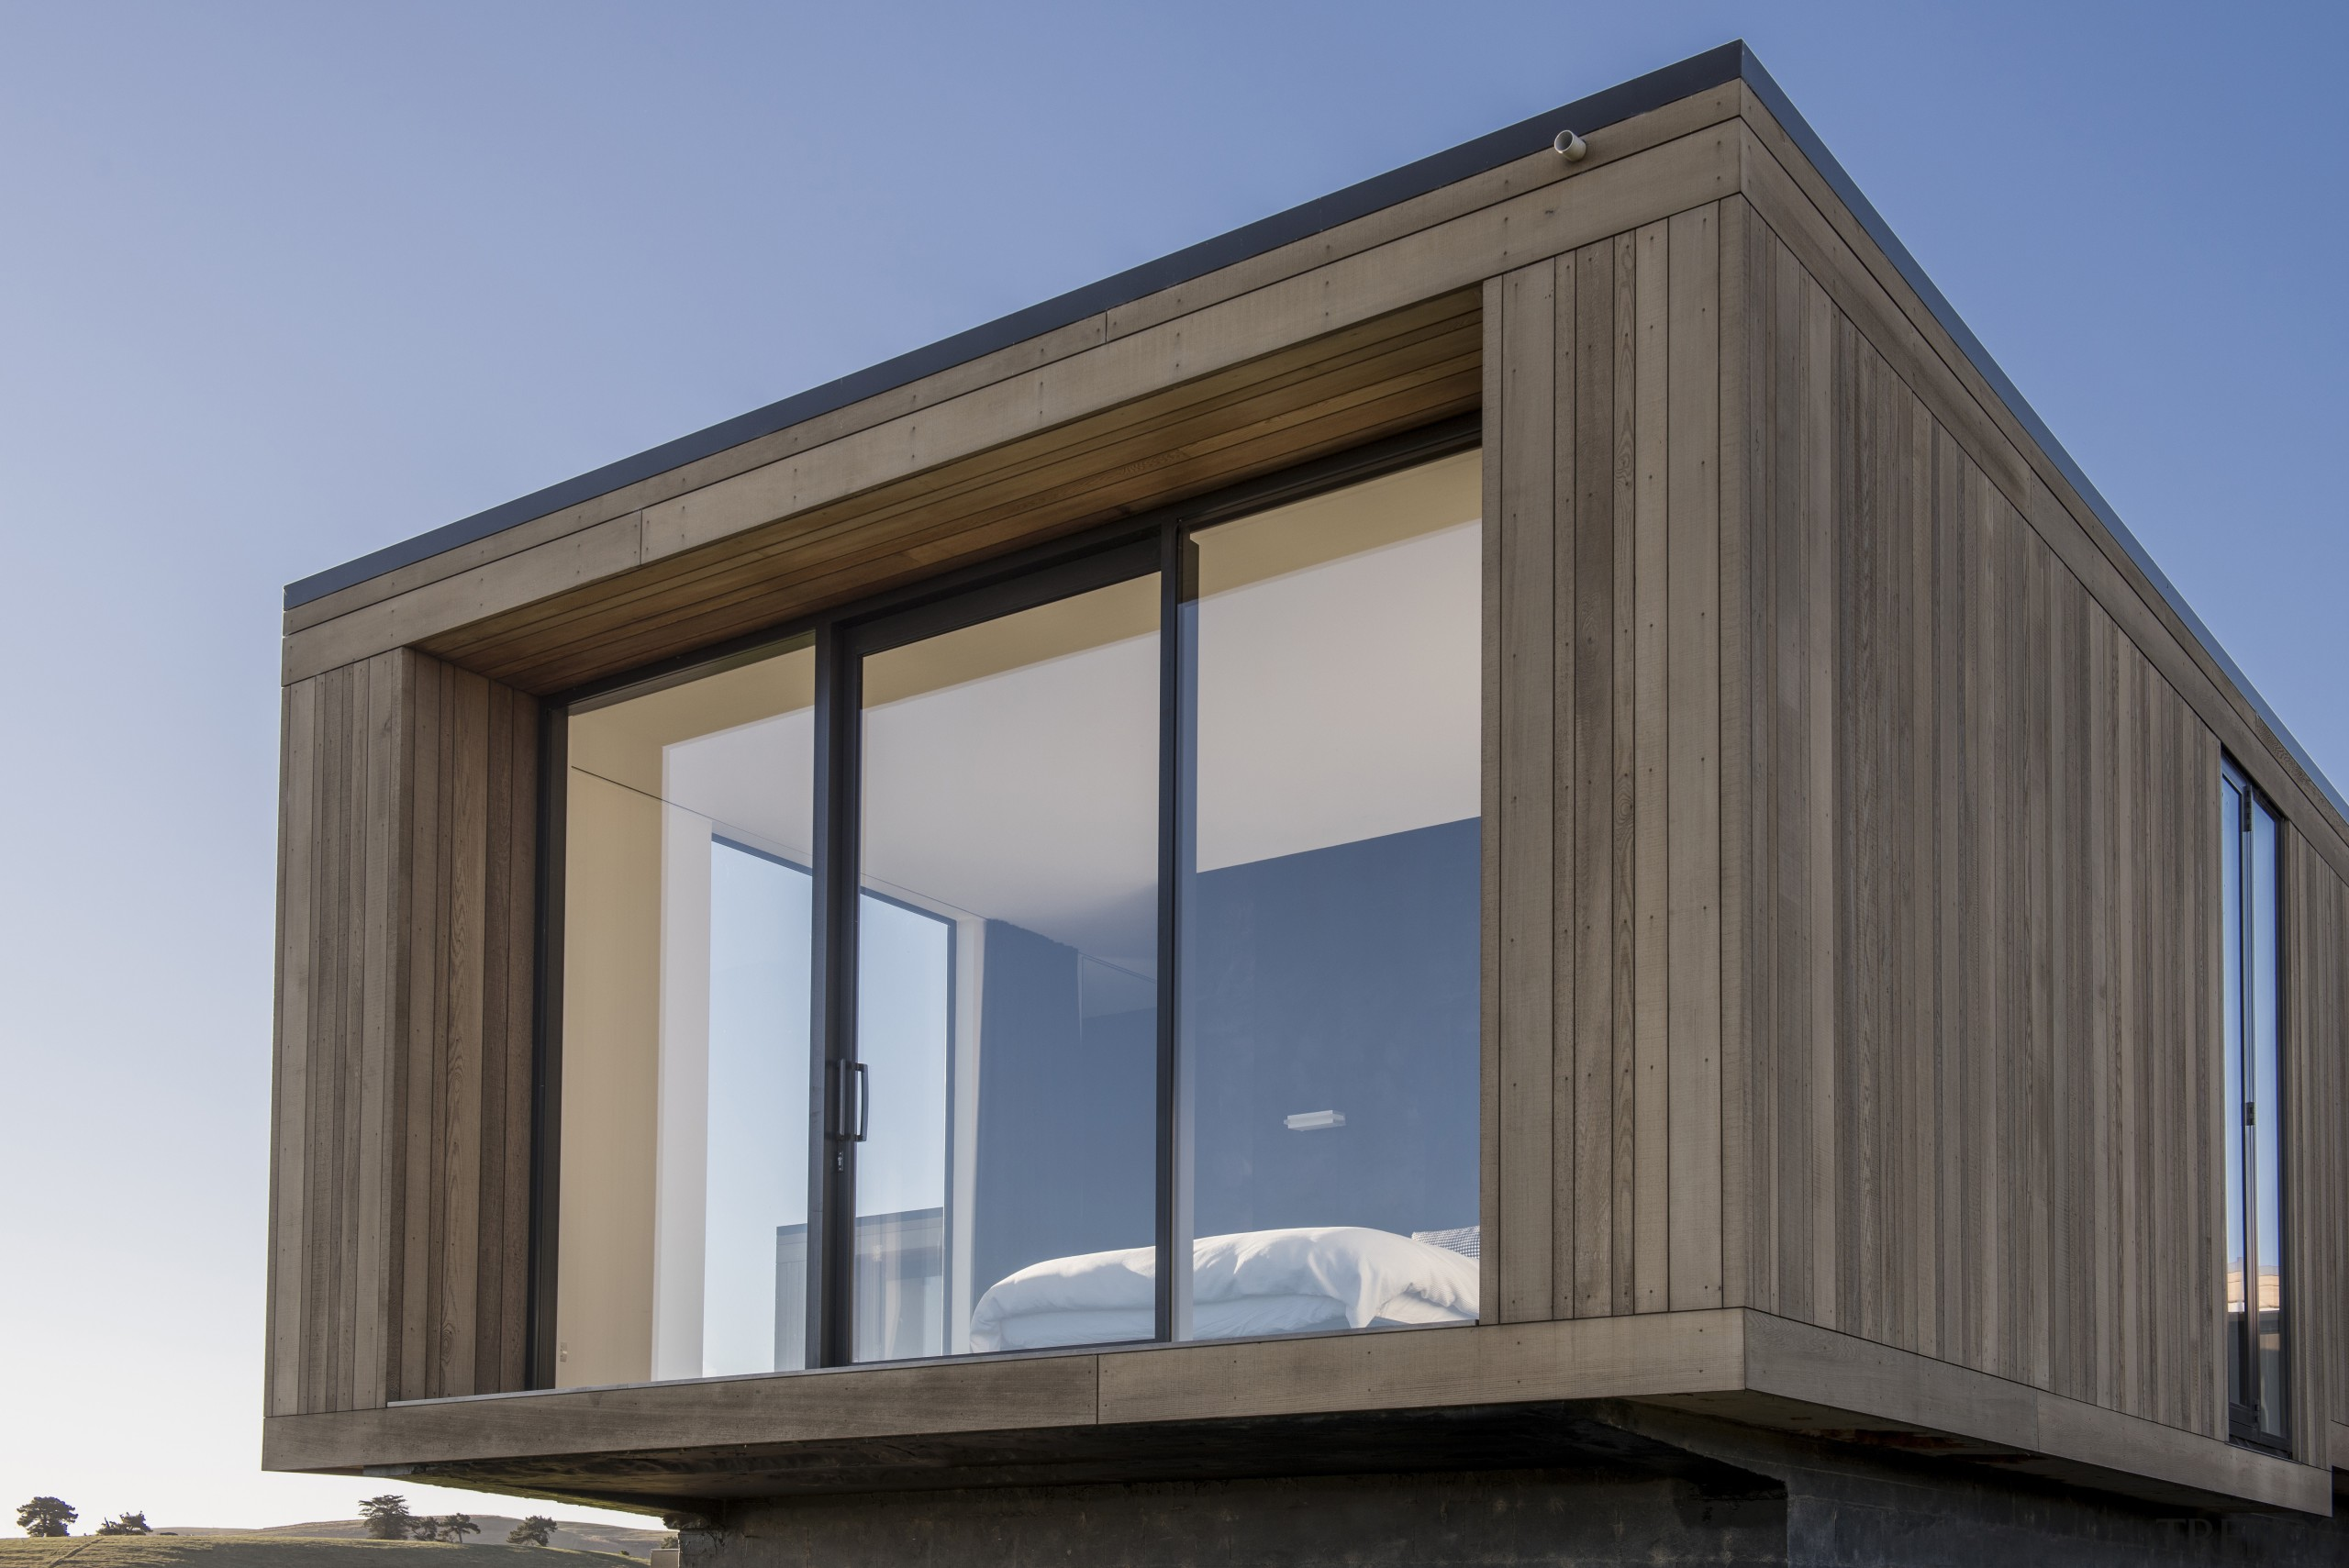 The central bedroom wing extends beyond the flanking architecture, building, facade, home, house, siding, window, gray